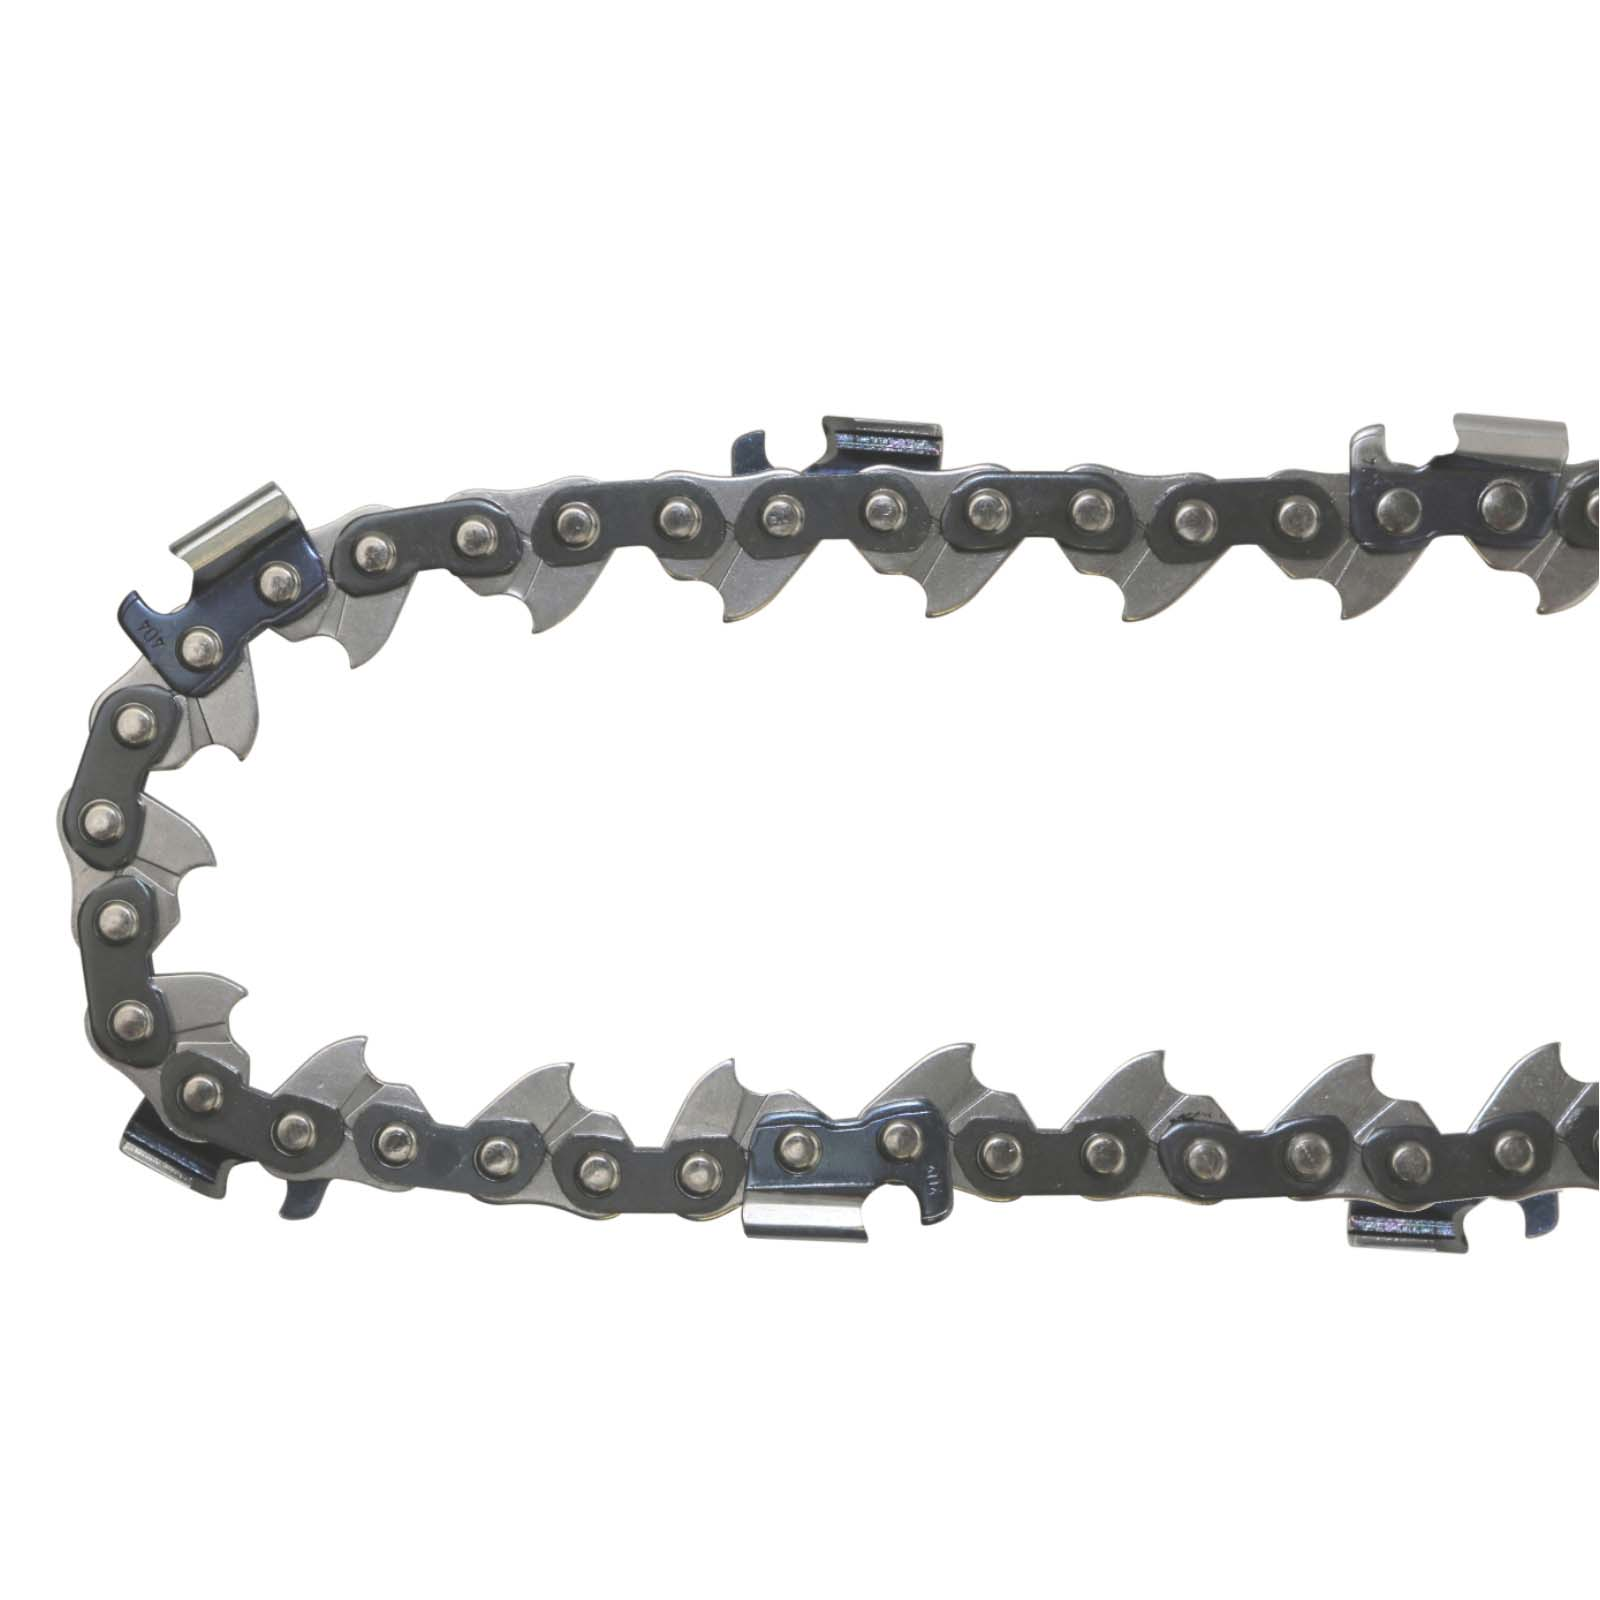 "1x Chainsaw Chain 404 063 172DL Semi Chisel Skip Tooth Ripping 60"" Bar"